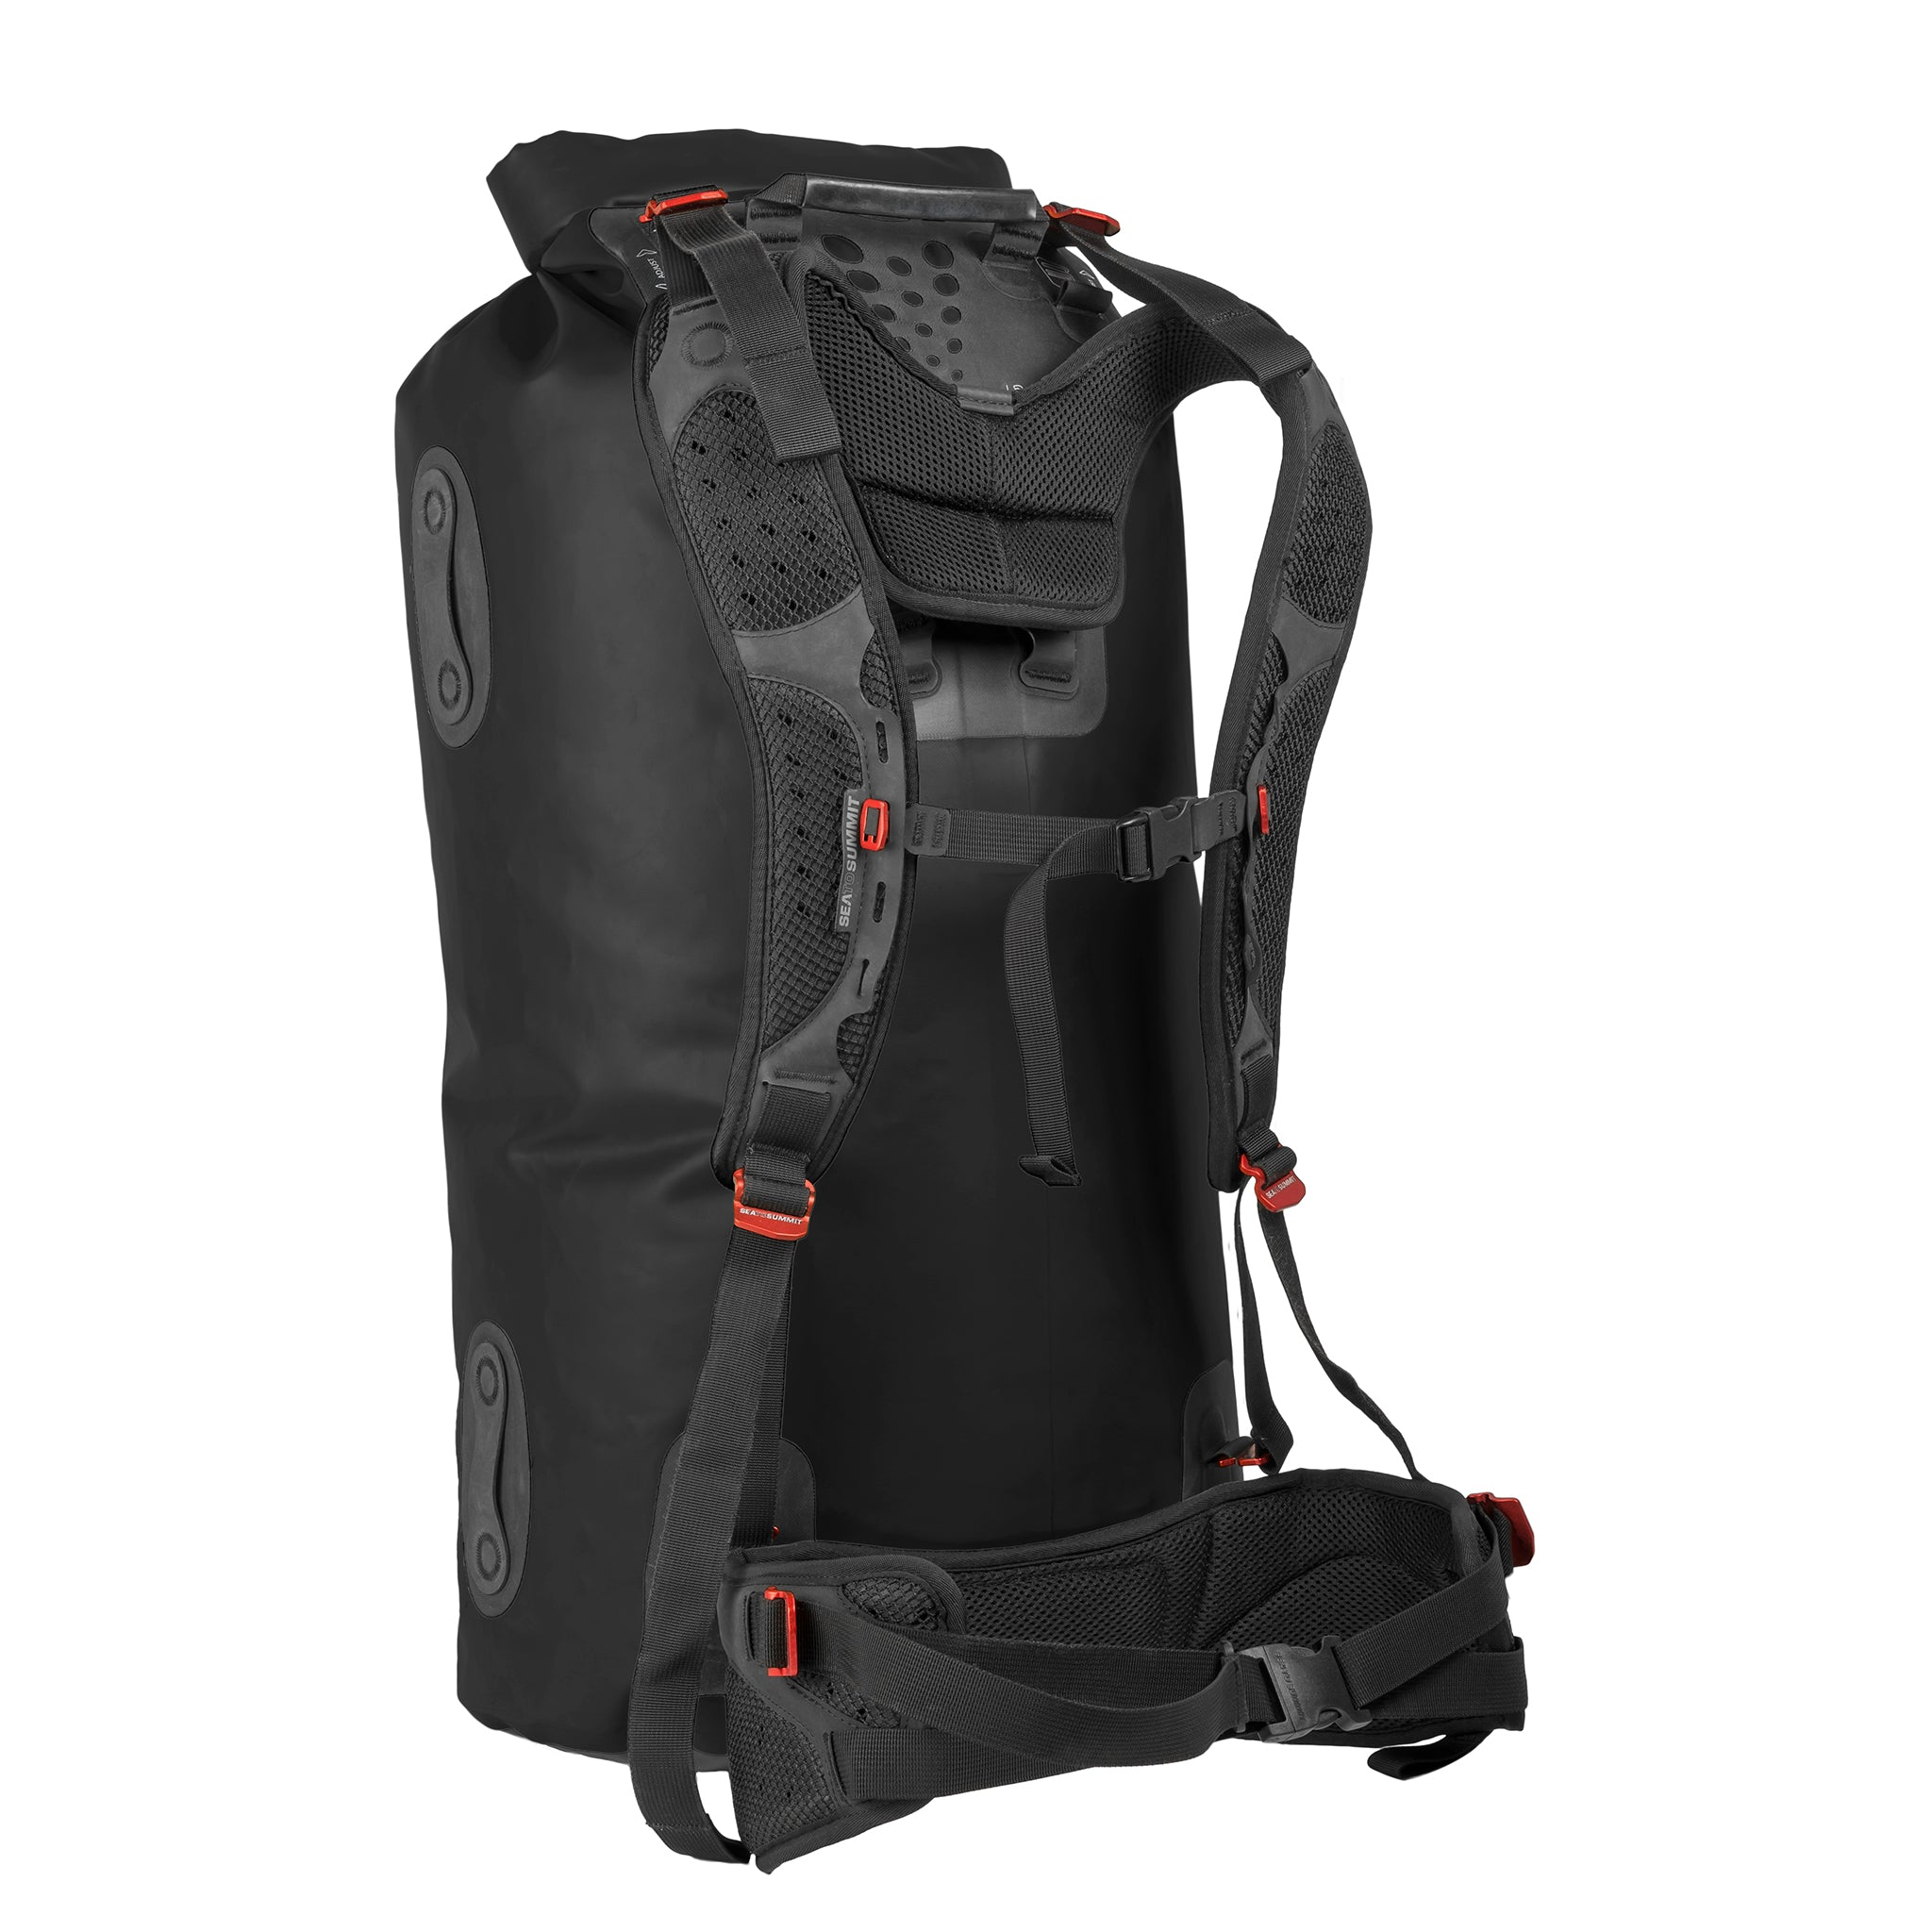 Hydraulic Dry Pack bag _ 65 liter _ black